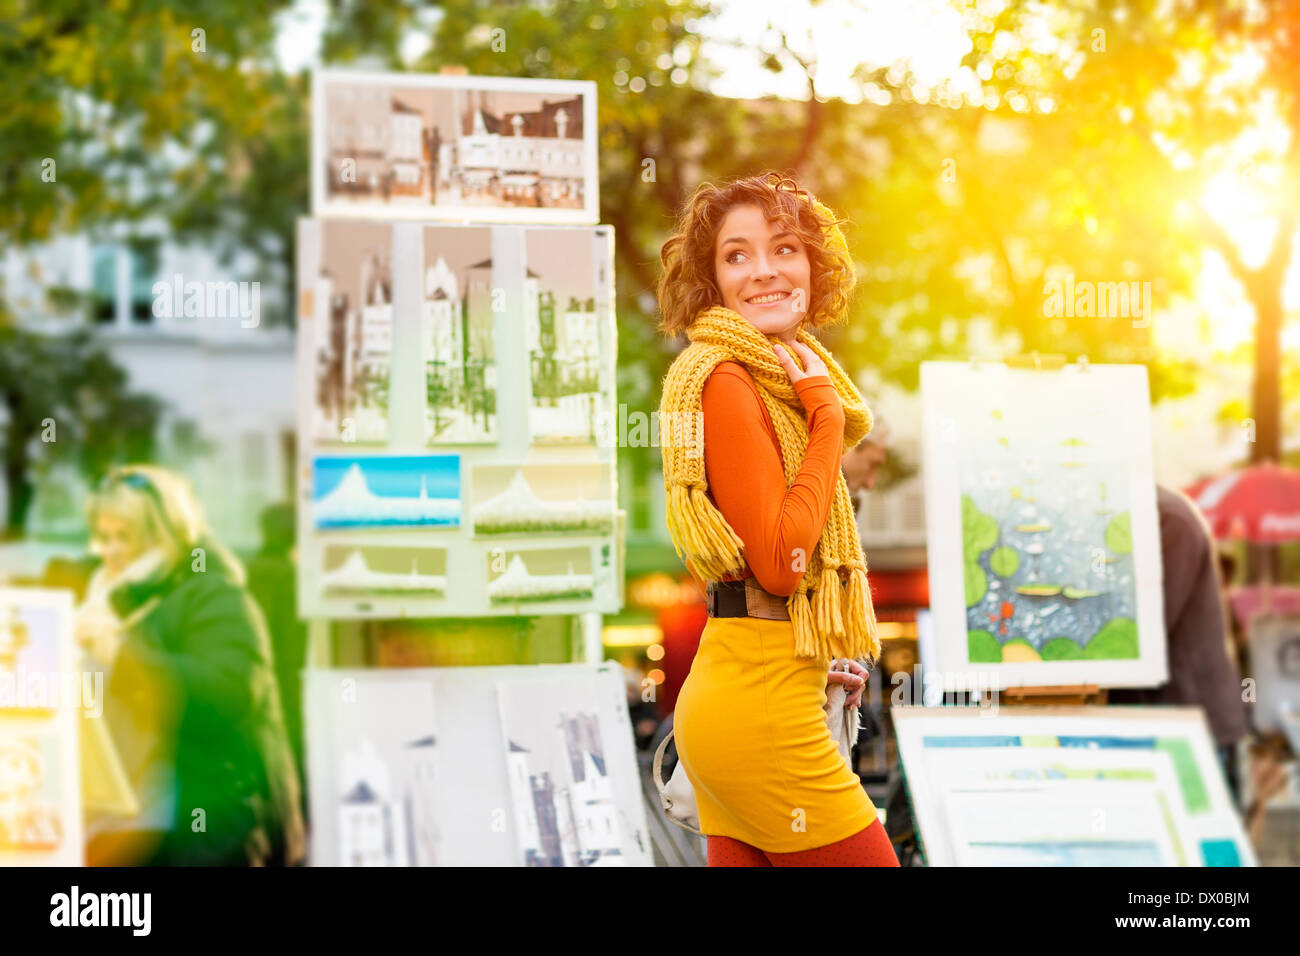 Paris, Woman Walking through Place du tertre, Montmartre - Stock Image